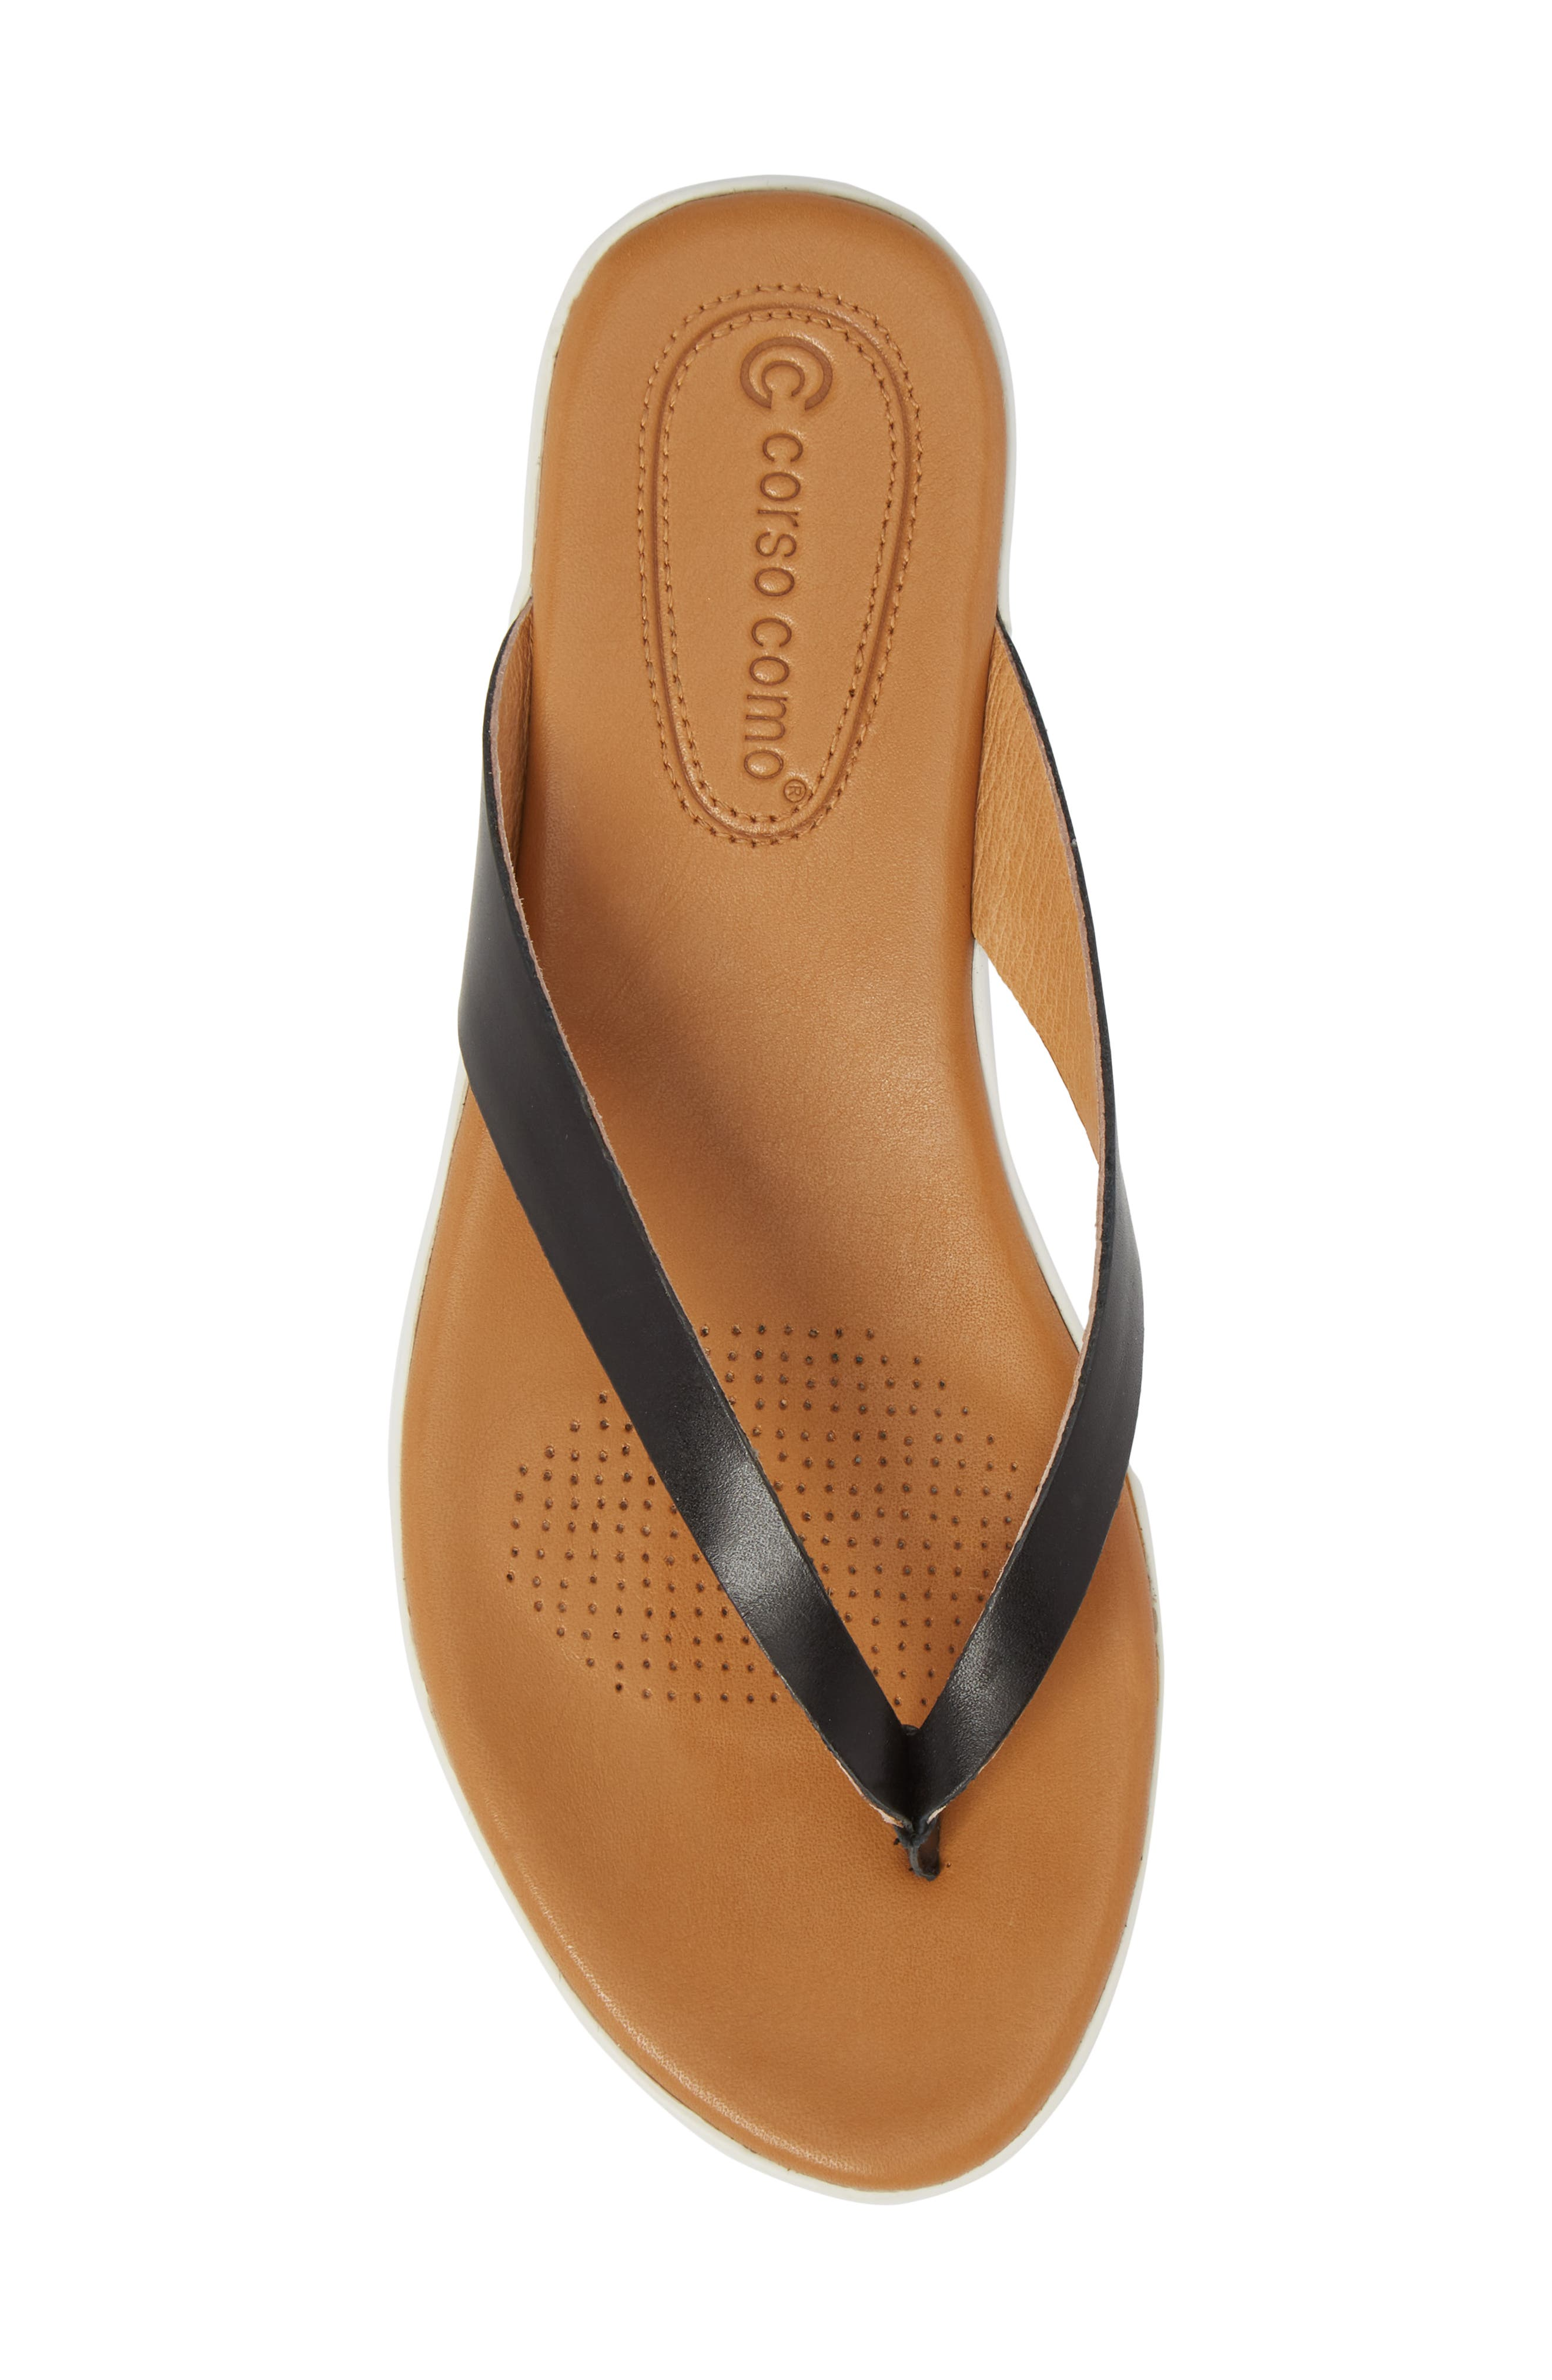 Tinnah Flip Flop,                             Alternate thumbnail 5, color,                             BLACK/ BLACK LEATHER